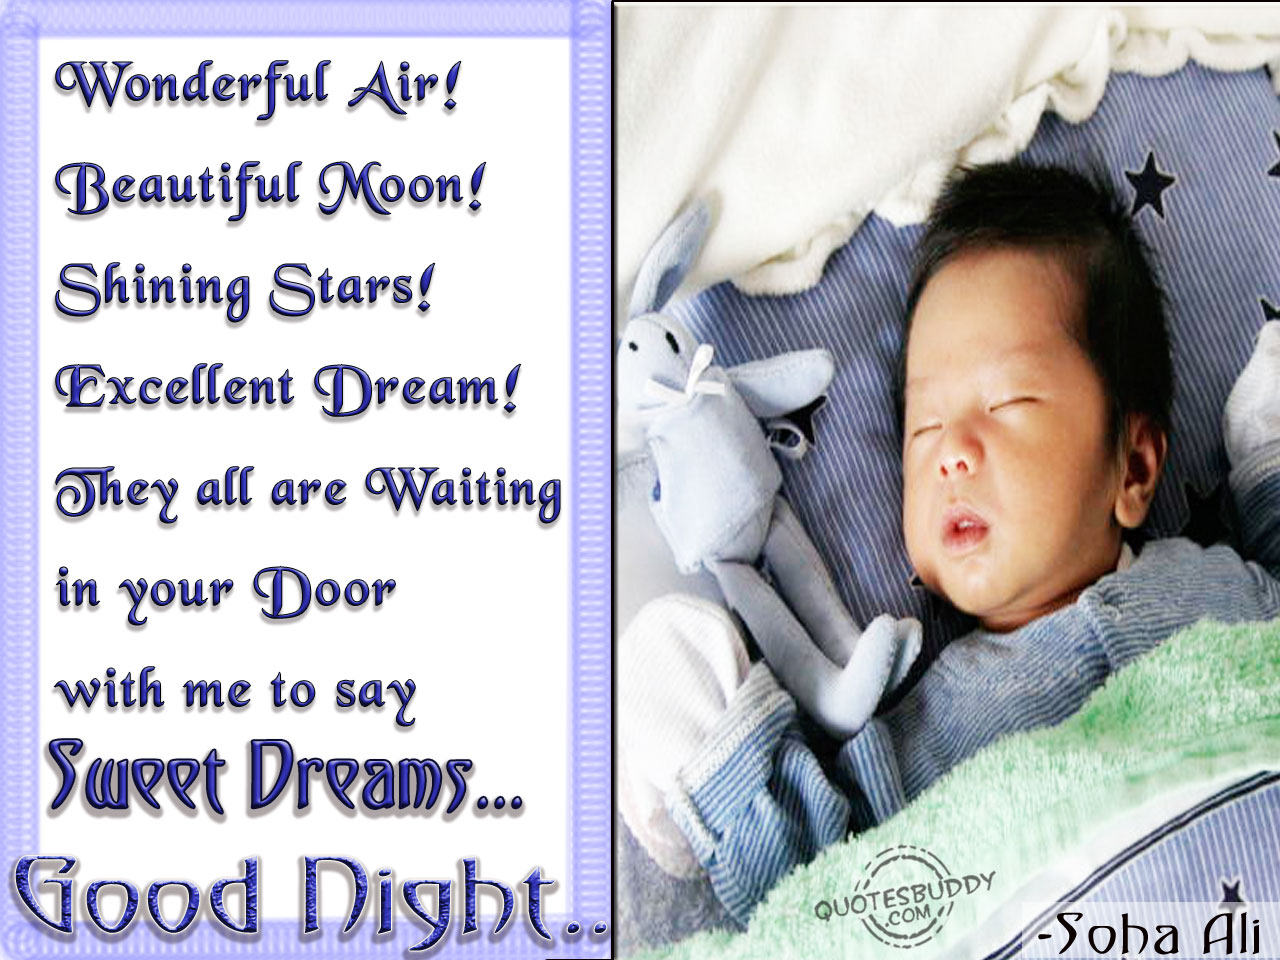 wonderful-air-beautiful-moon-shining-stars-excellent-dream-they-all-are-waiting-in-your-door-with-me-to-say-sweet-dreams-good-night-quote